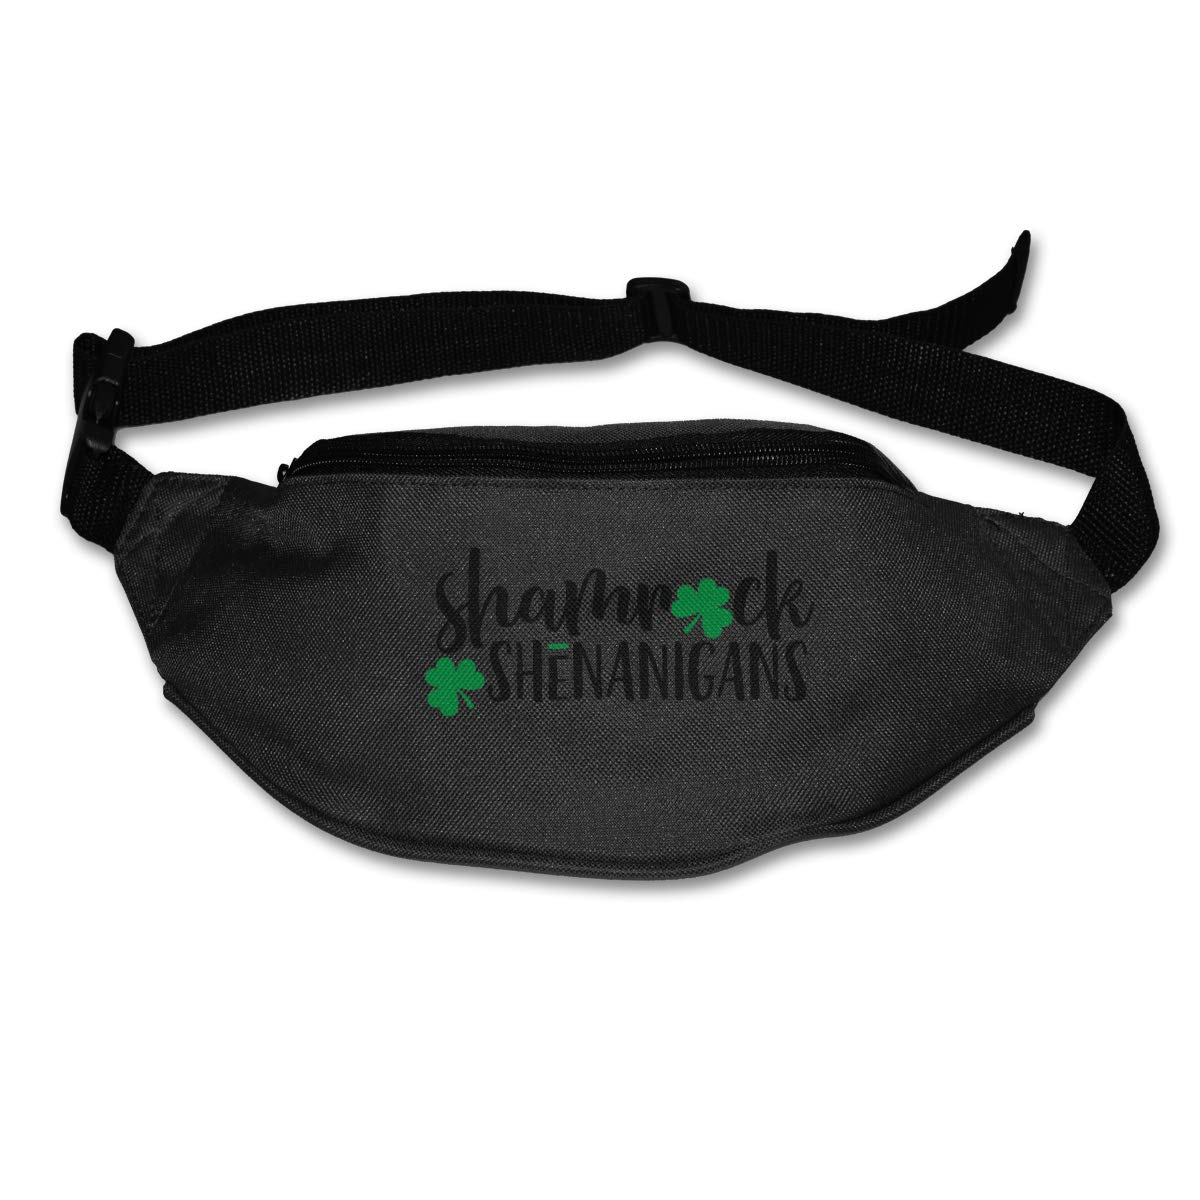 Shamrock Shenanigans Sport Waist Packs Fanny Pack Adjustable For Run